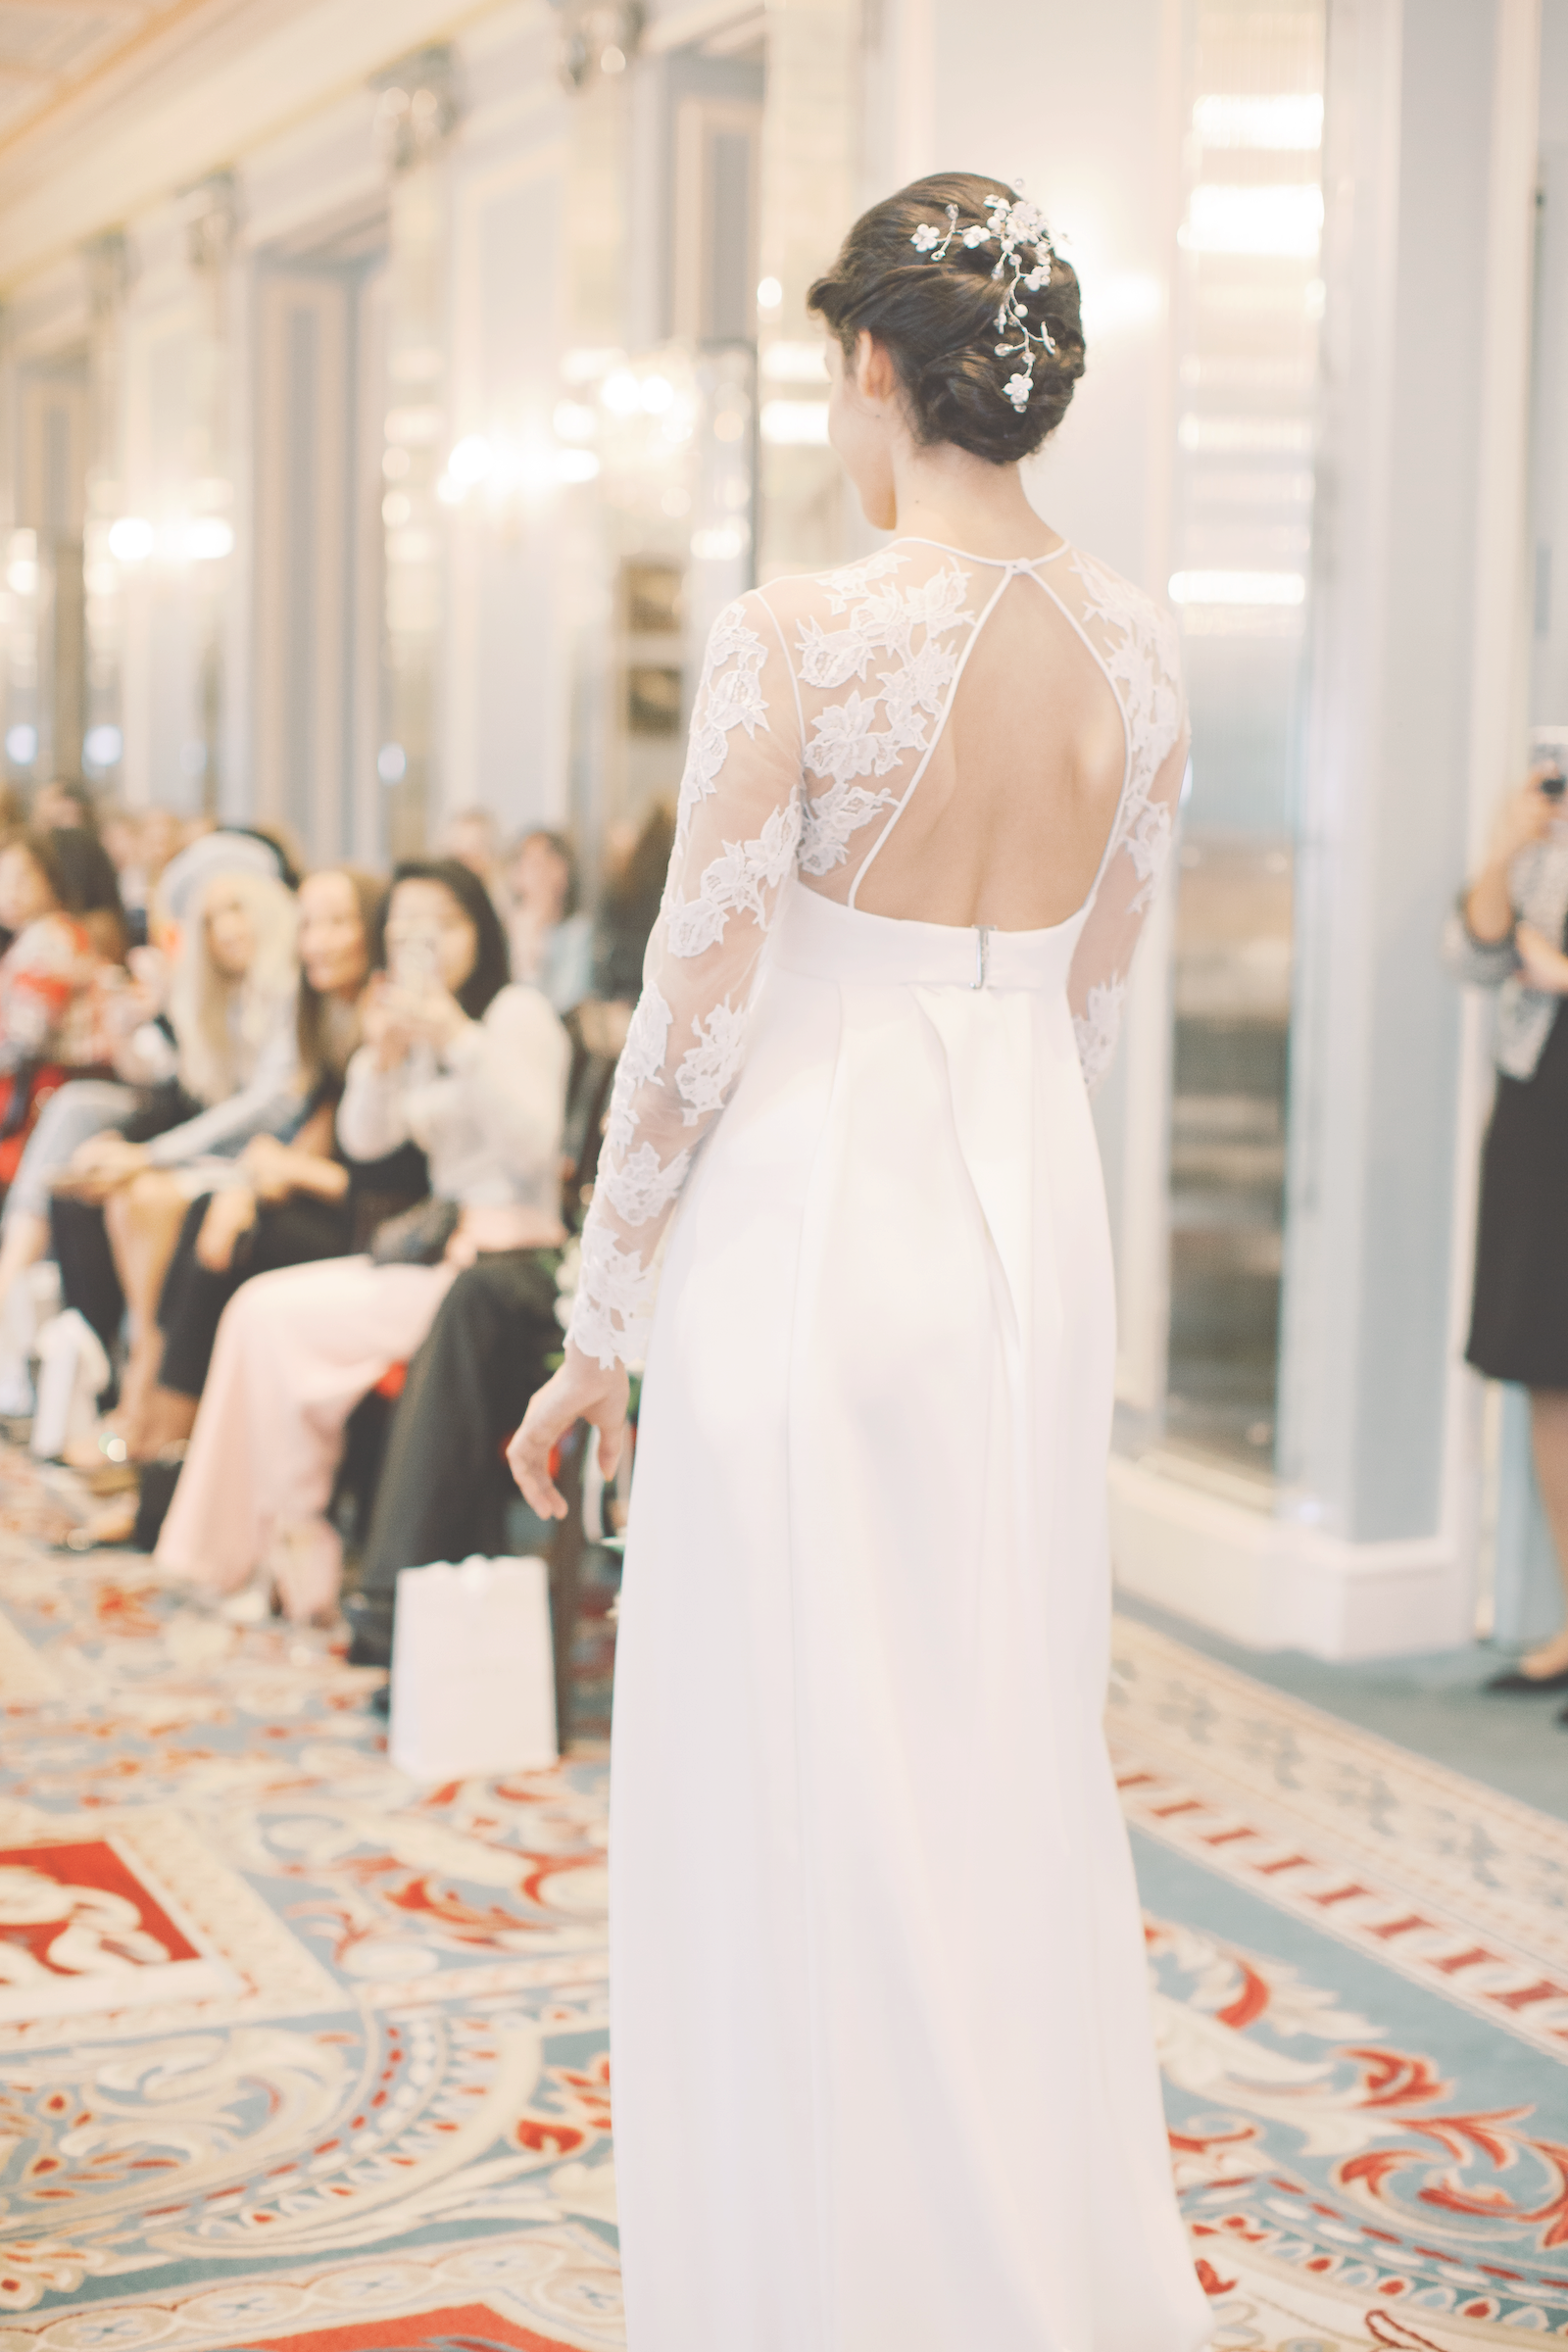 Lily & Sage | Luxury Wedding Planner | Bridal Fashion Show Fashion Stylist Event Stylist Lanesborough Hotel London Bridal Collection Fashion Events Events Styling | La Perla.png